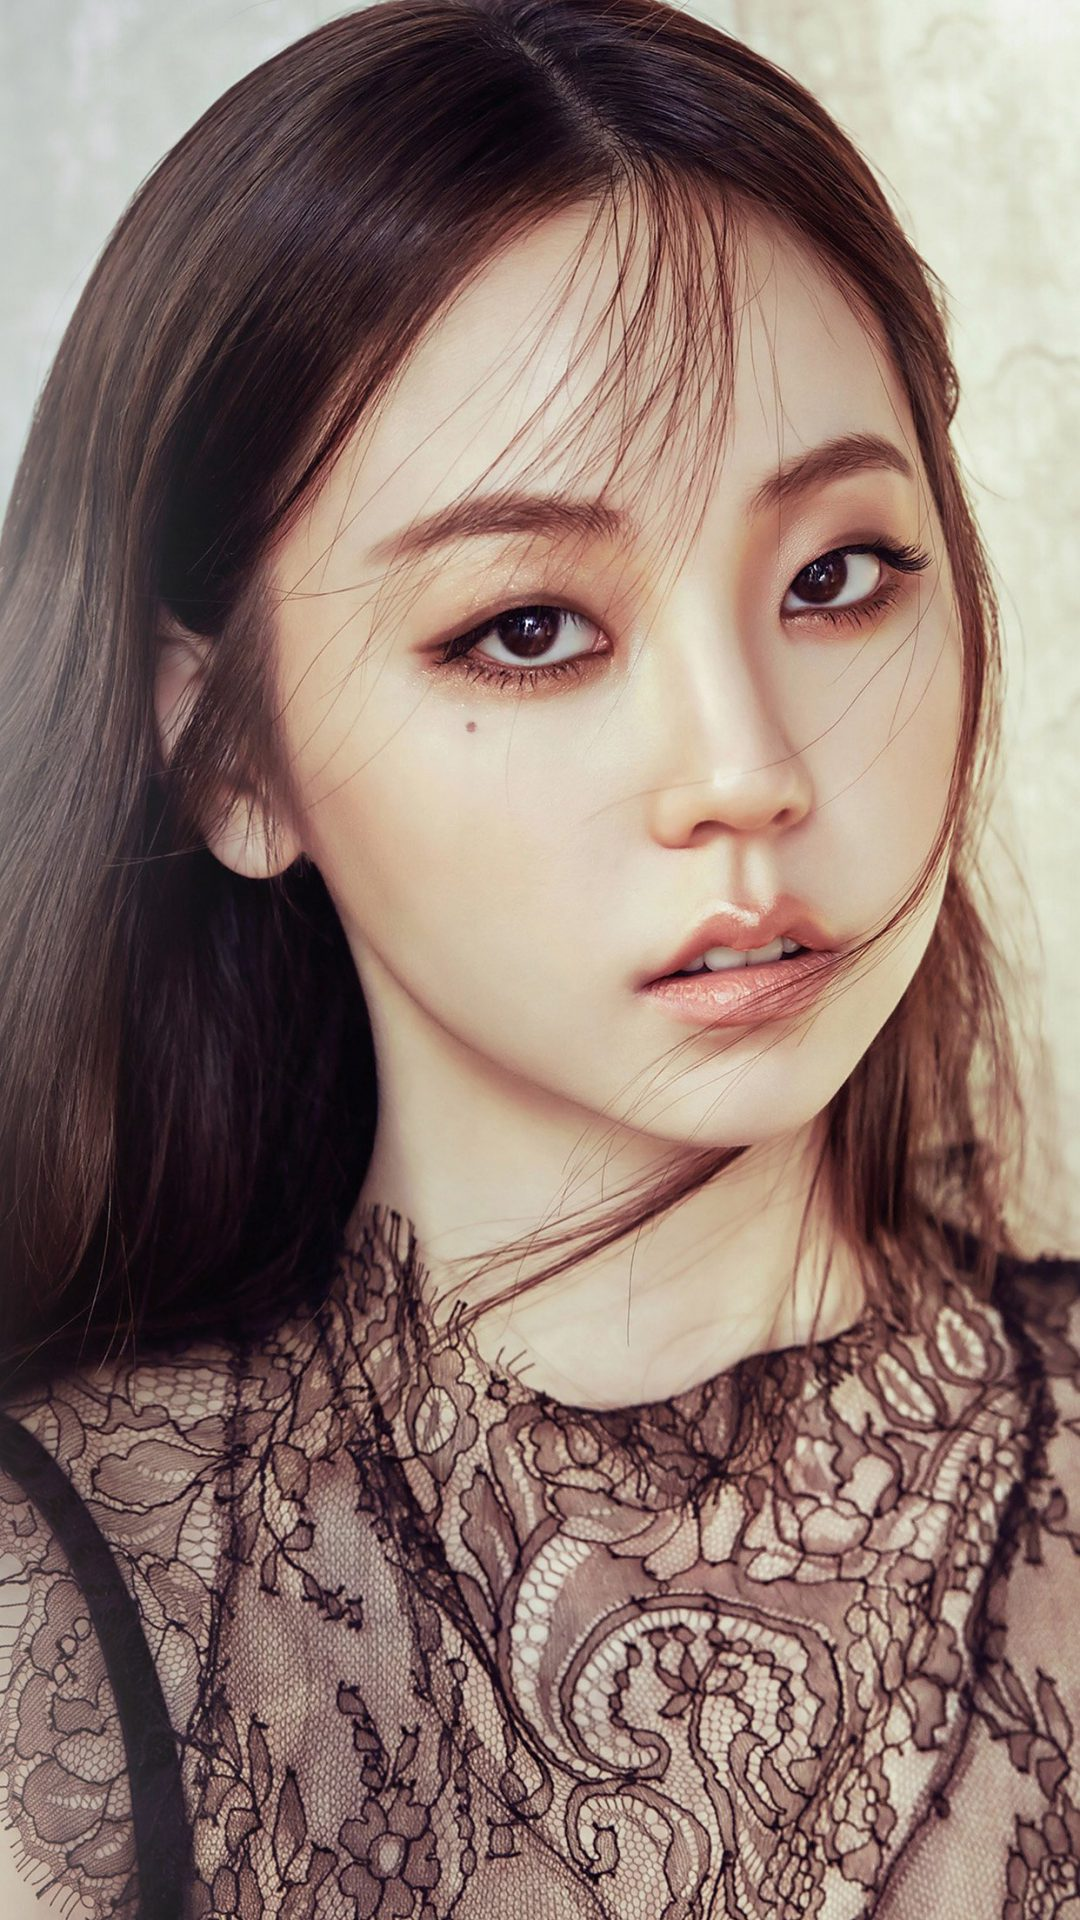 Sohee Girl Kpop Photoshoot